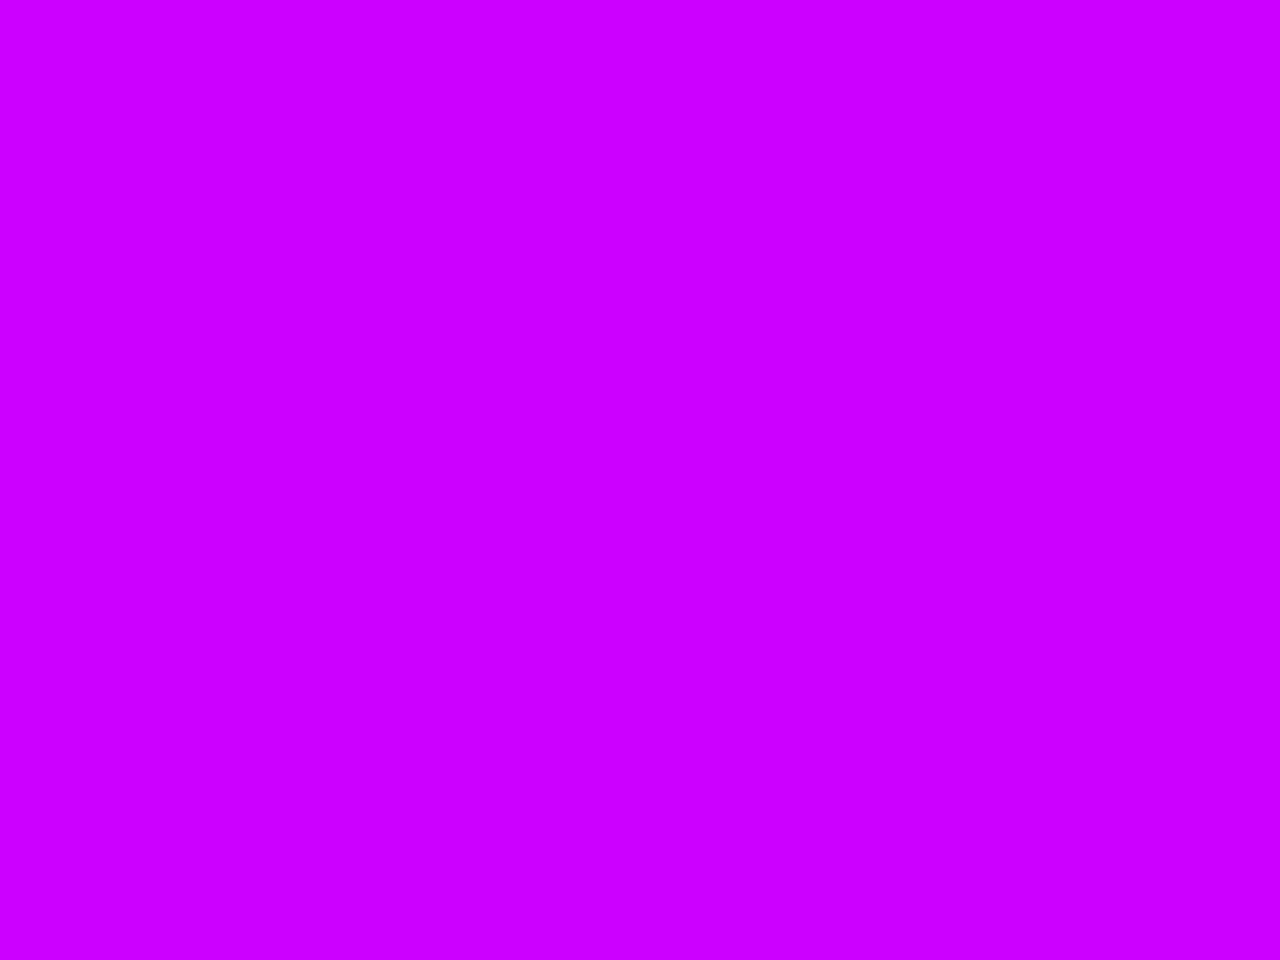 1280x960 Vivid Orchid Solid Color Background